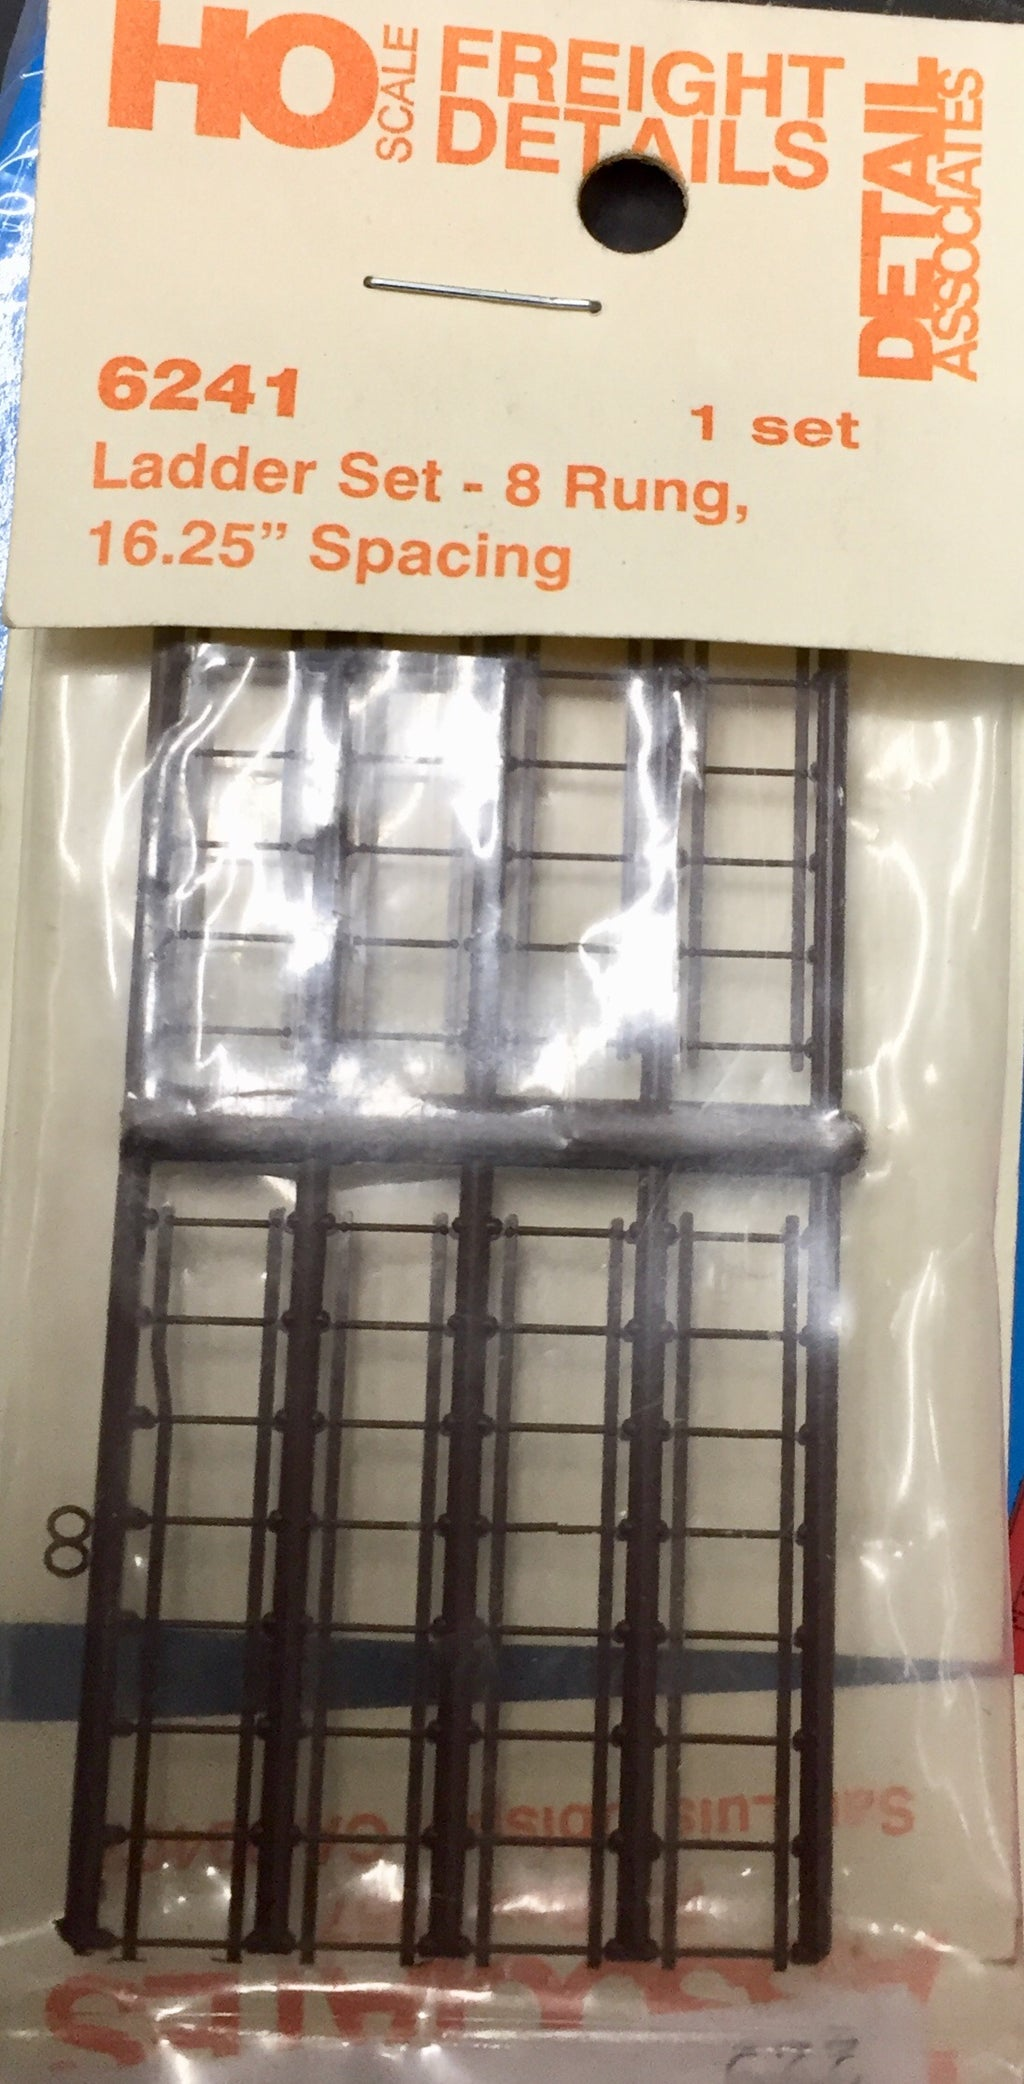 "DETAIL ASS - 6241 - Ladder Set - 8 Rung, 16.25"" Spacing.  (end of run stock)"